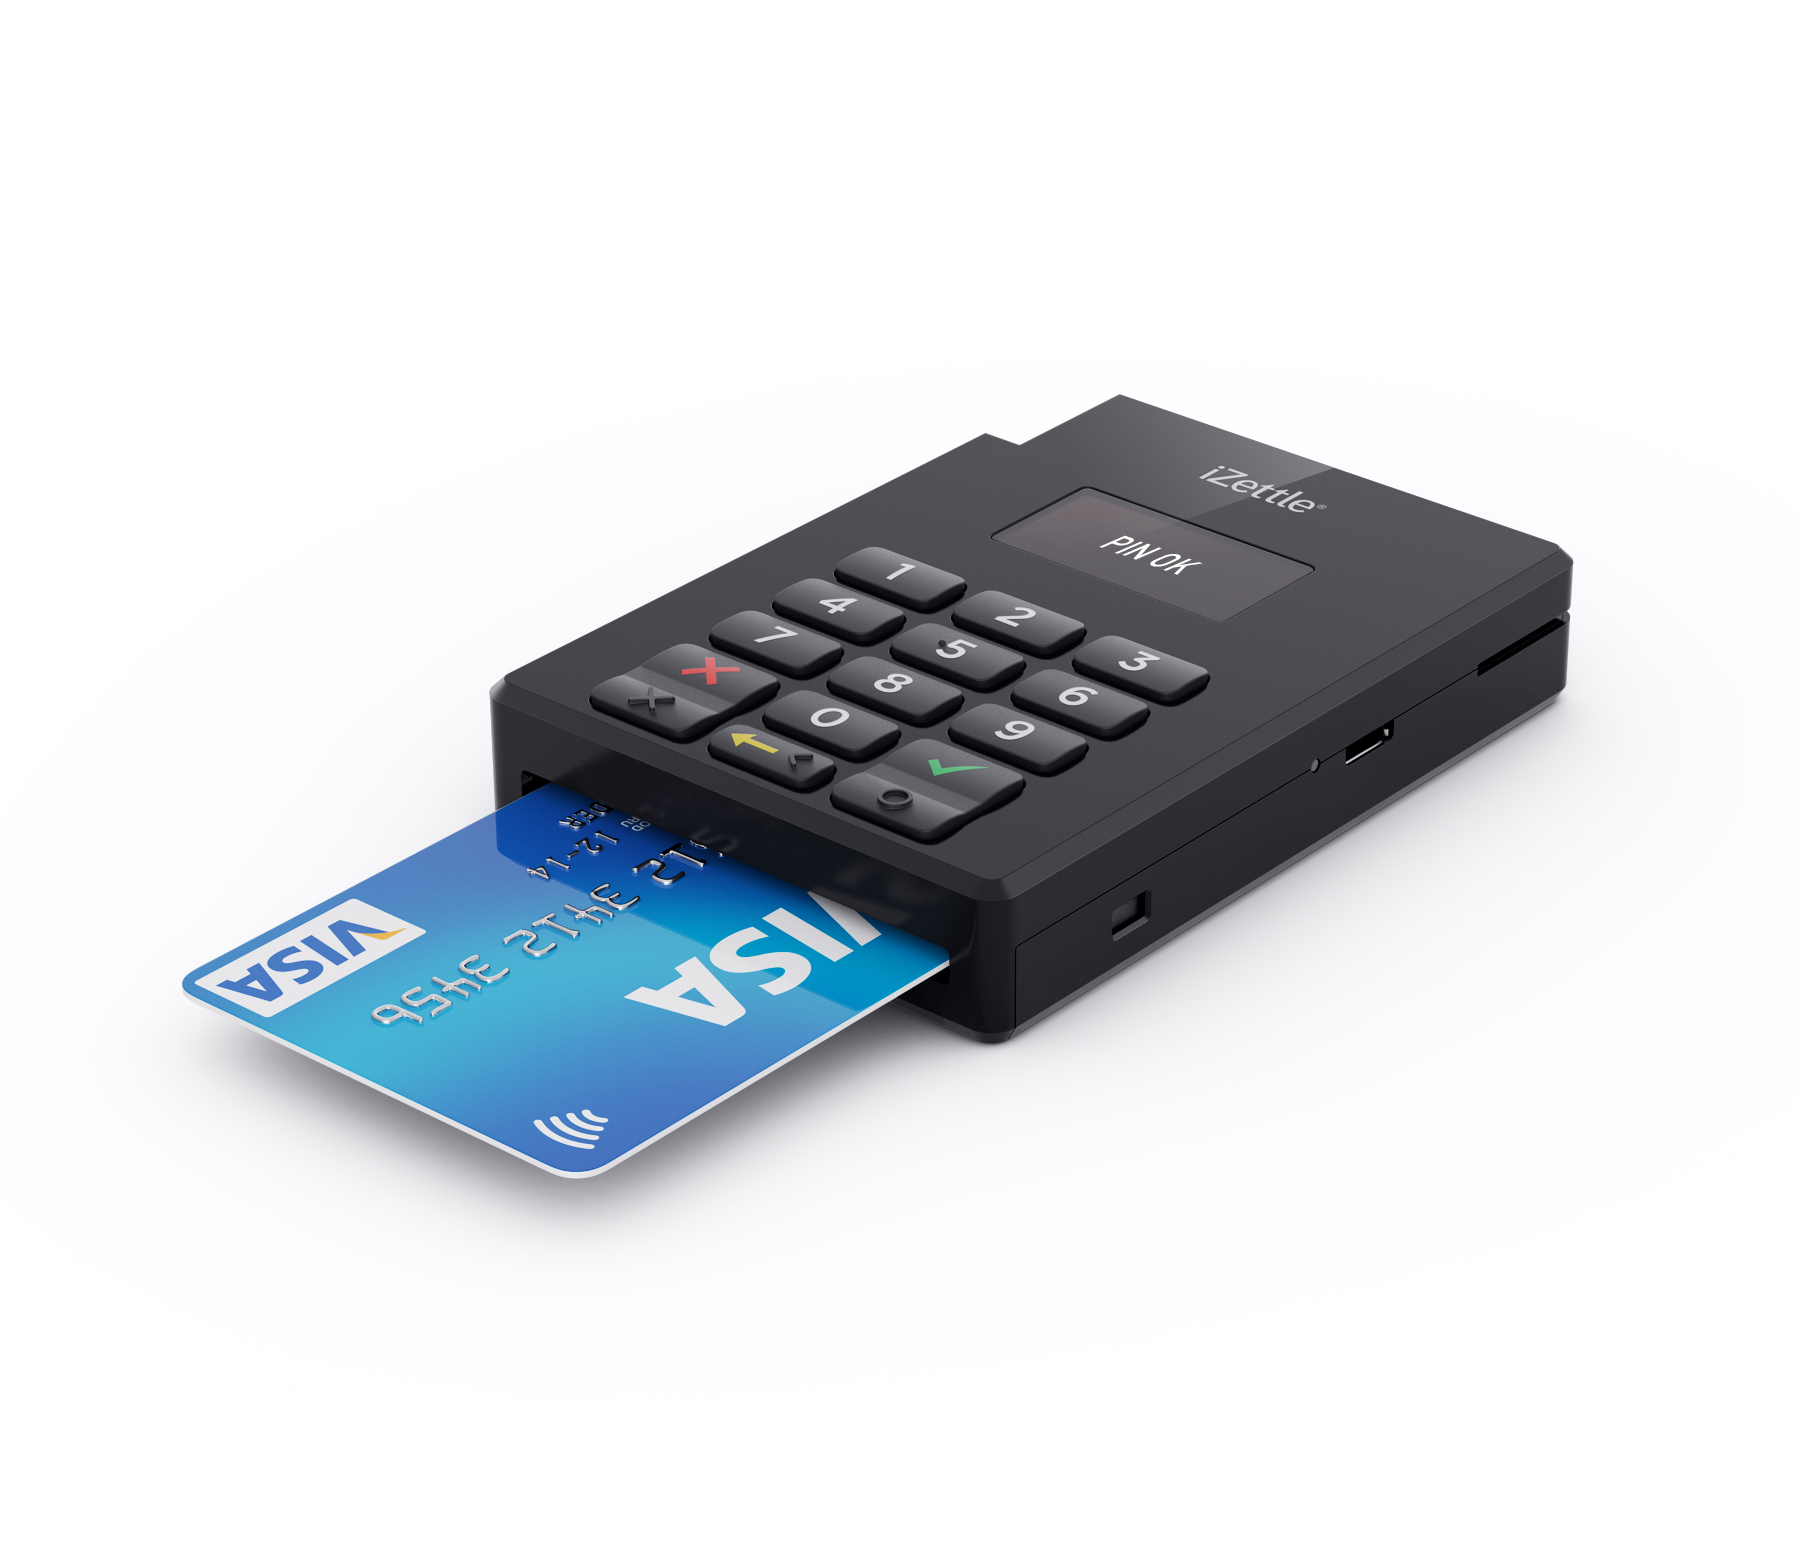 Debit and credit card machines for small business images free debit and credit card machines for small business caroleandellie debit and credit card machines for small magicingreecefo Images